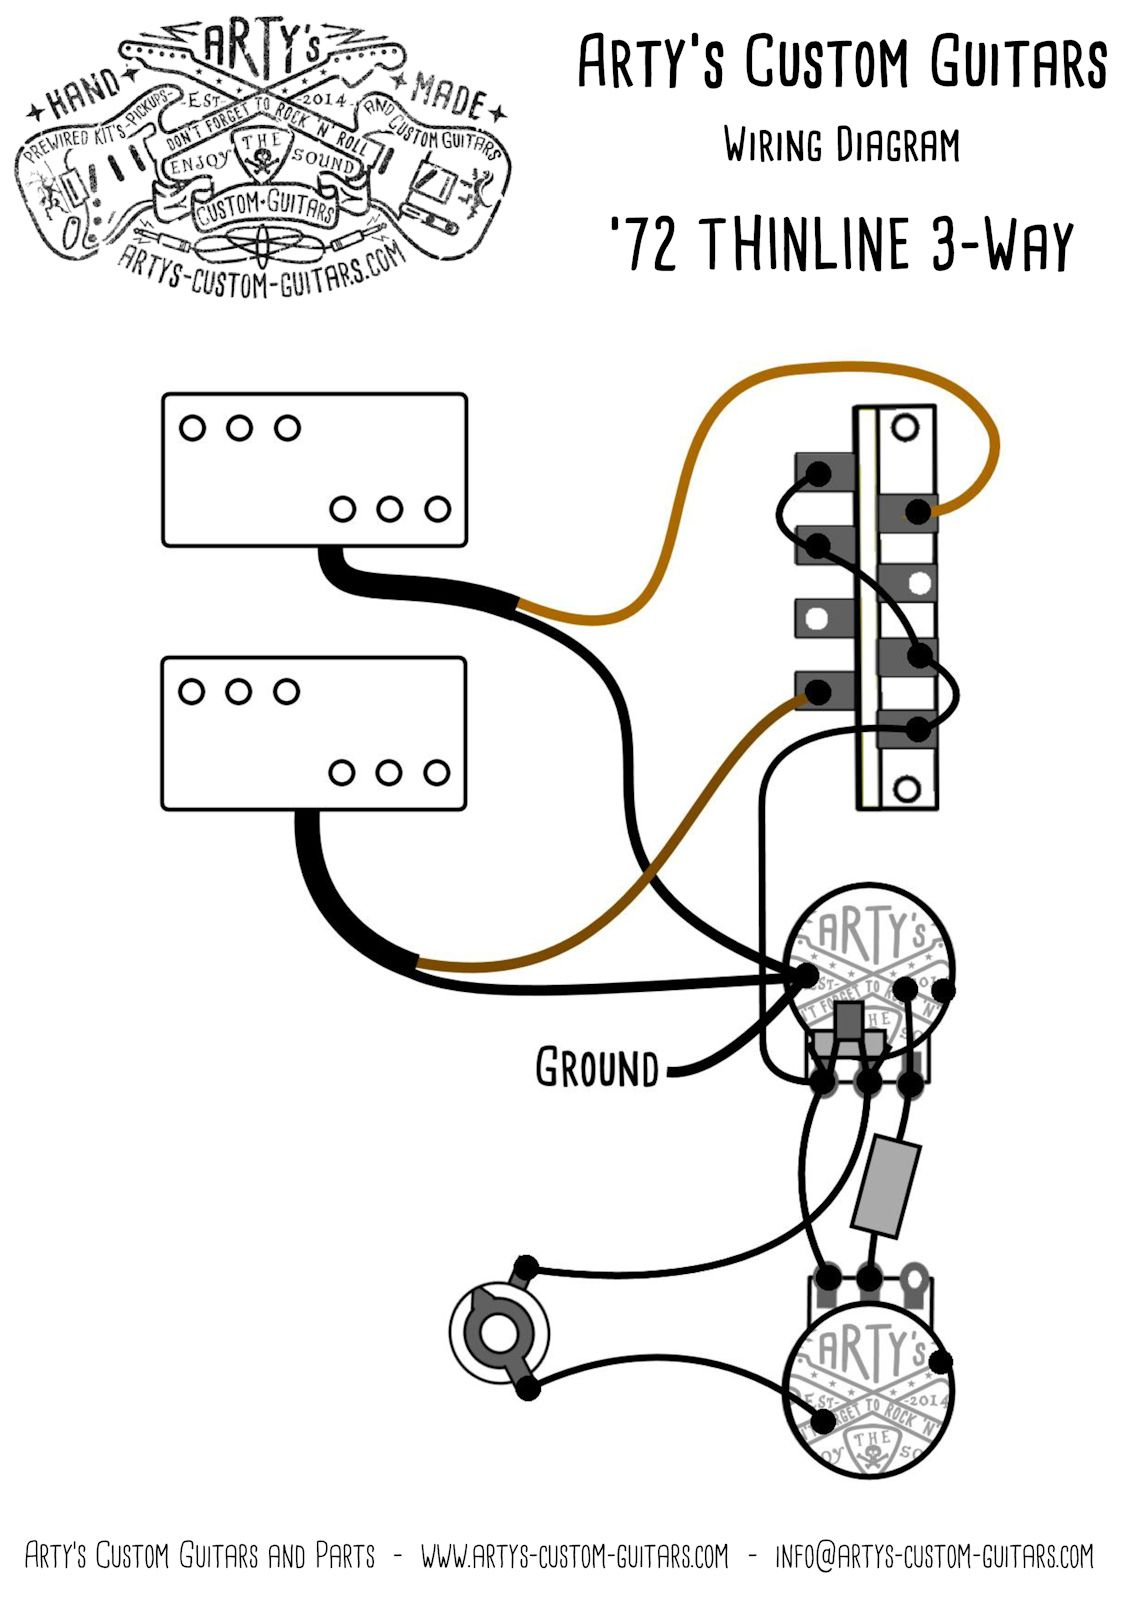 Squier Telecaster Wrhb Wiring Diagram from static-resources.imageservice.cloud